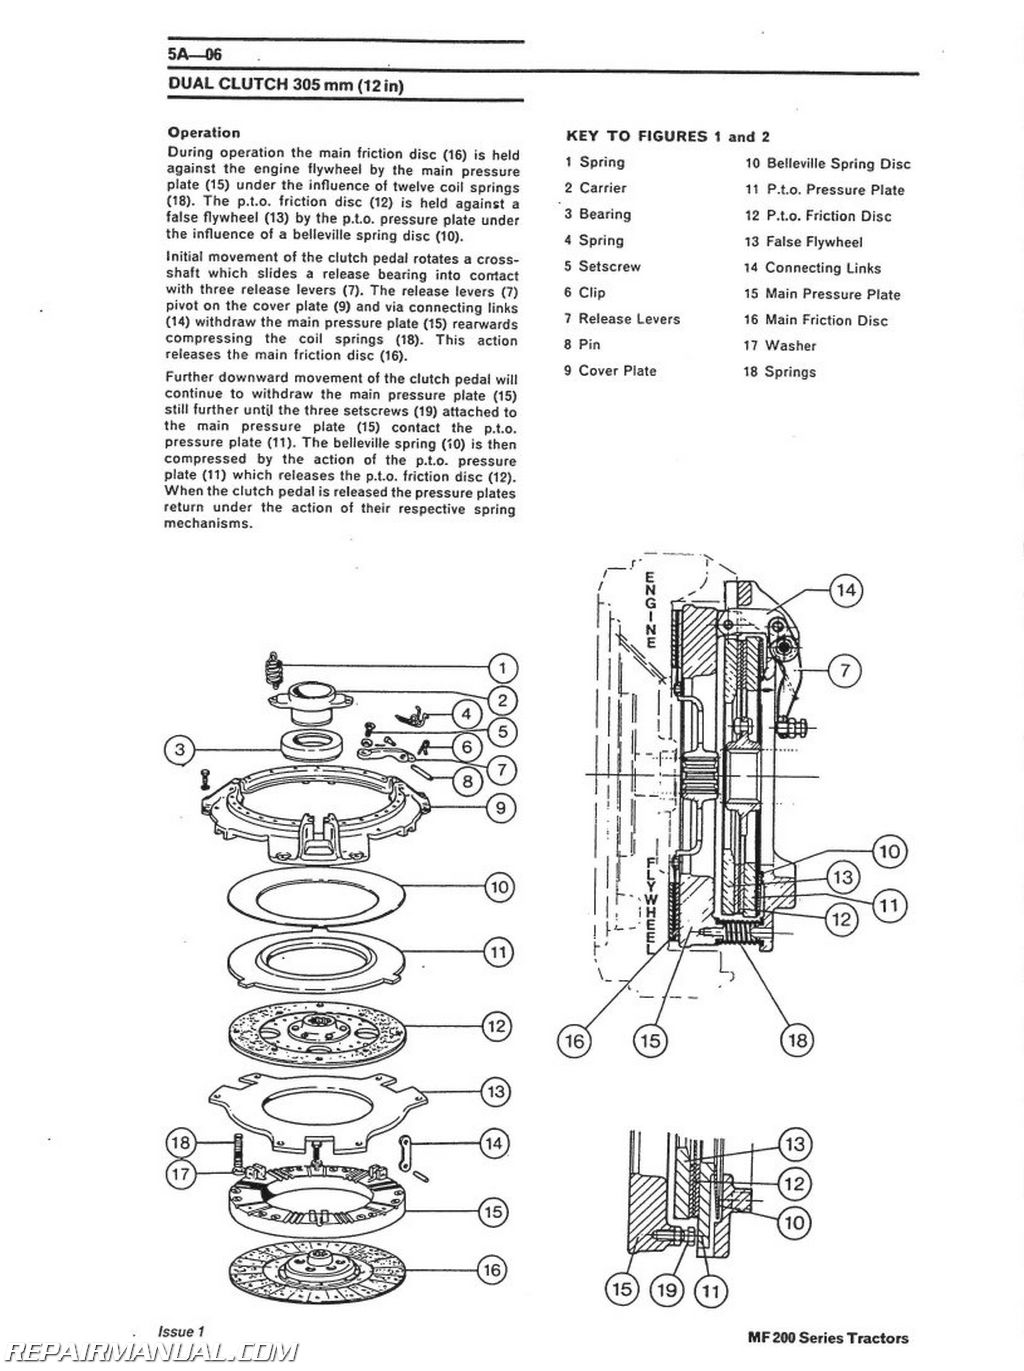 Massey Ferguson 165 Wiring Diagram from www.repairmanual.com